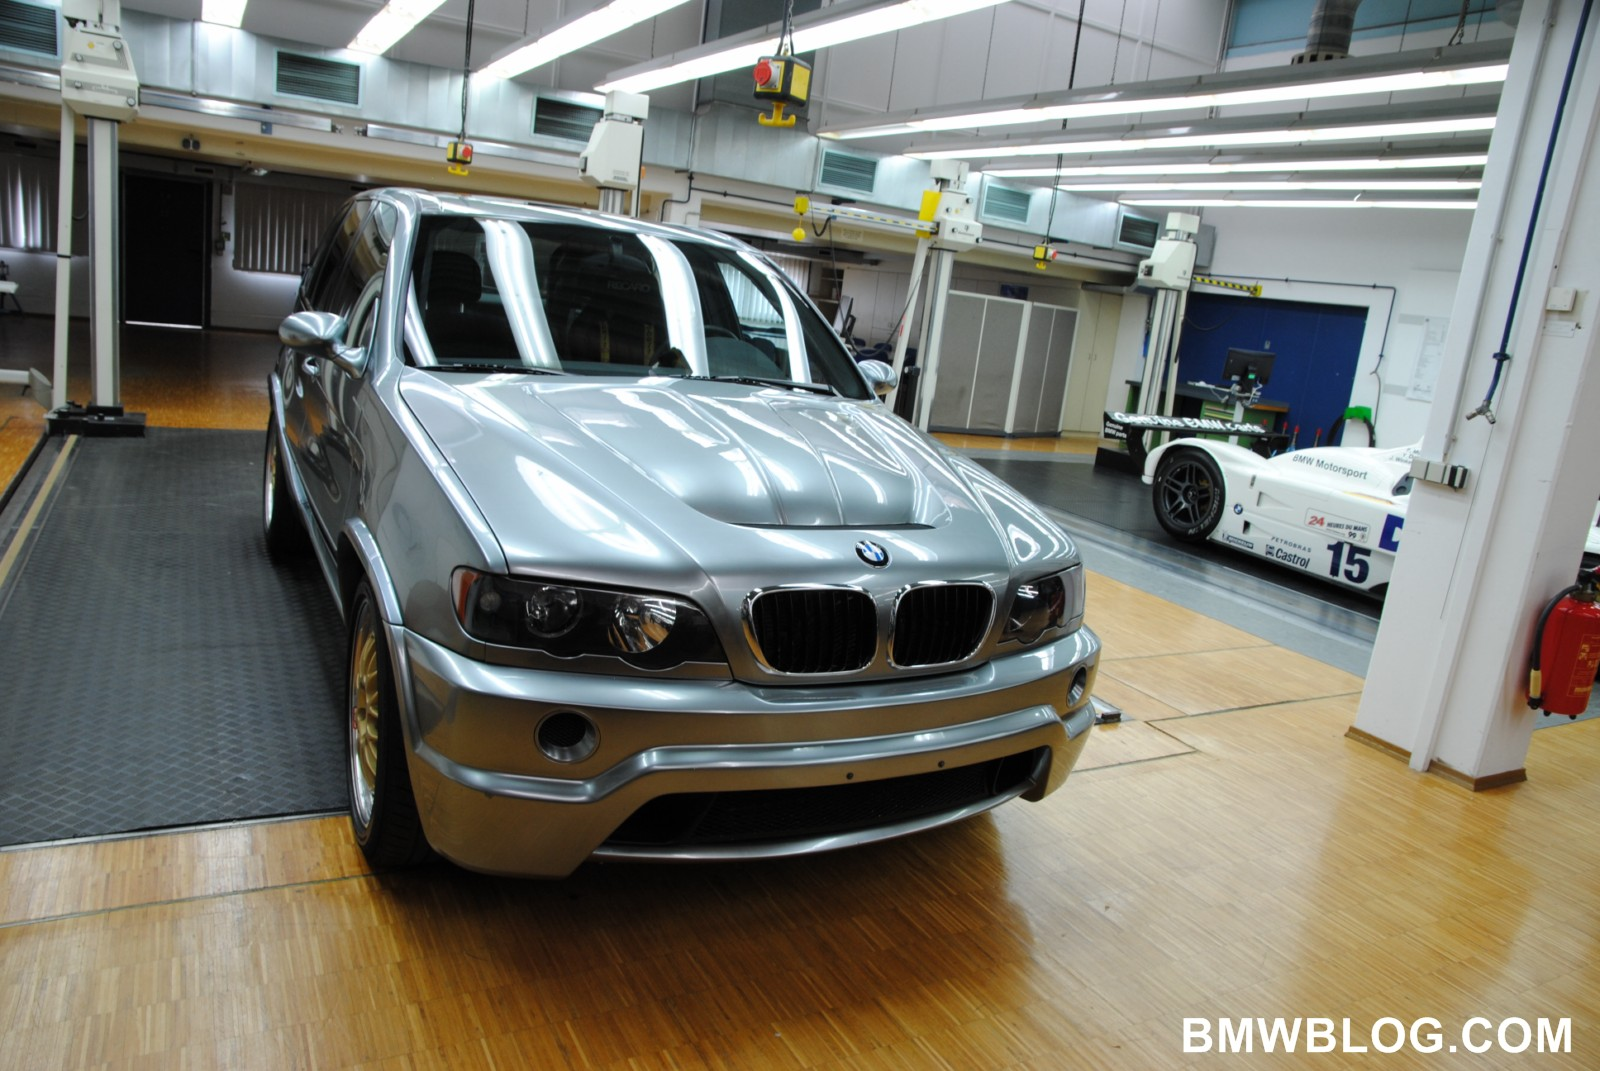 BMW X5 LeMans 311